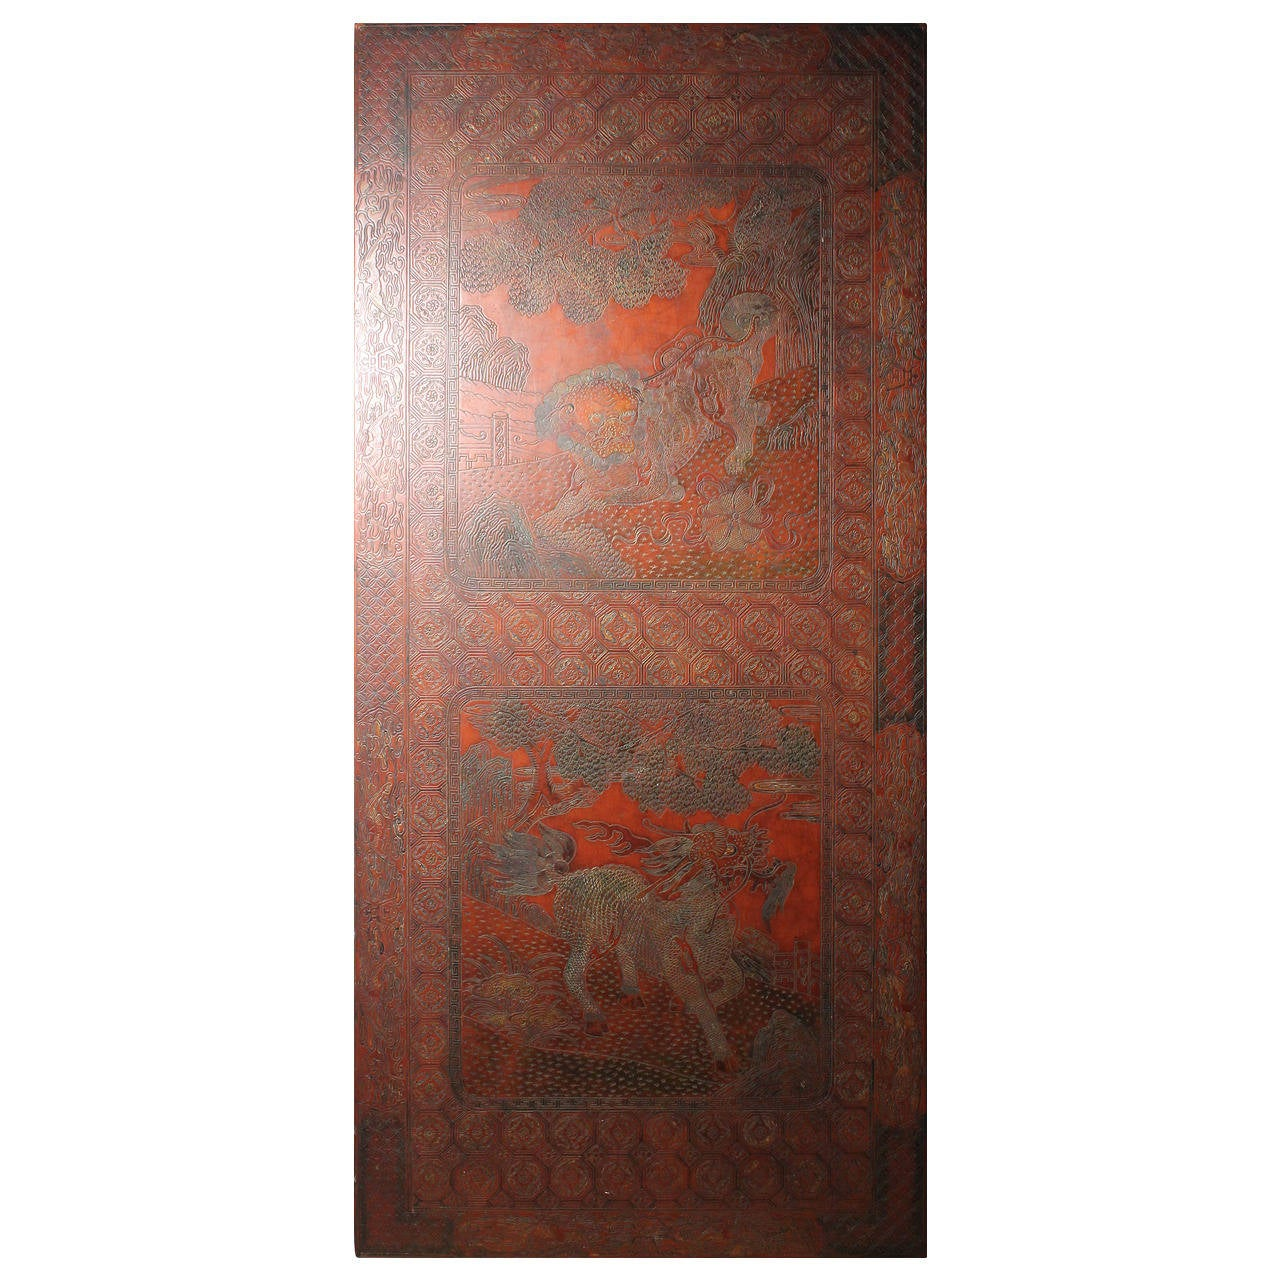 French Coffee Table in Max Kuehne Manner, Asian Chinese Chinoiserie Style